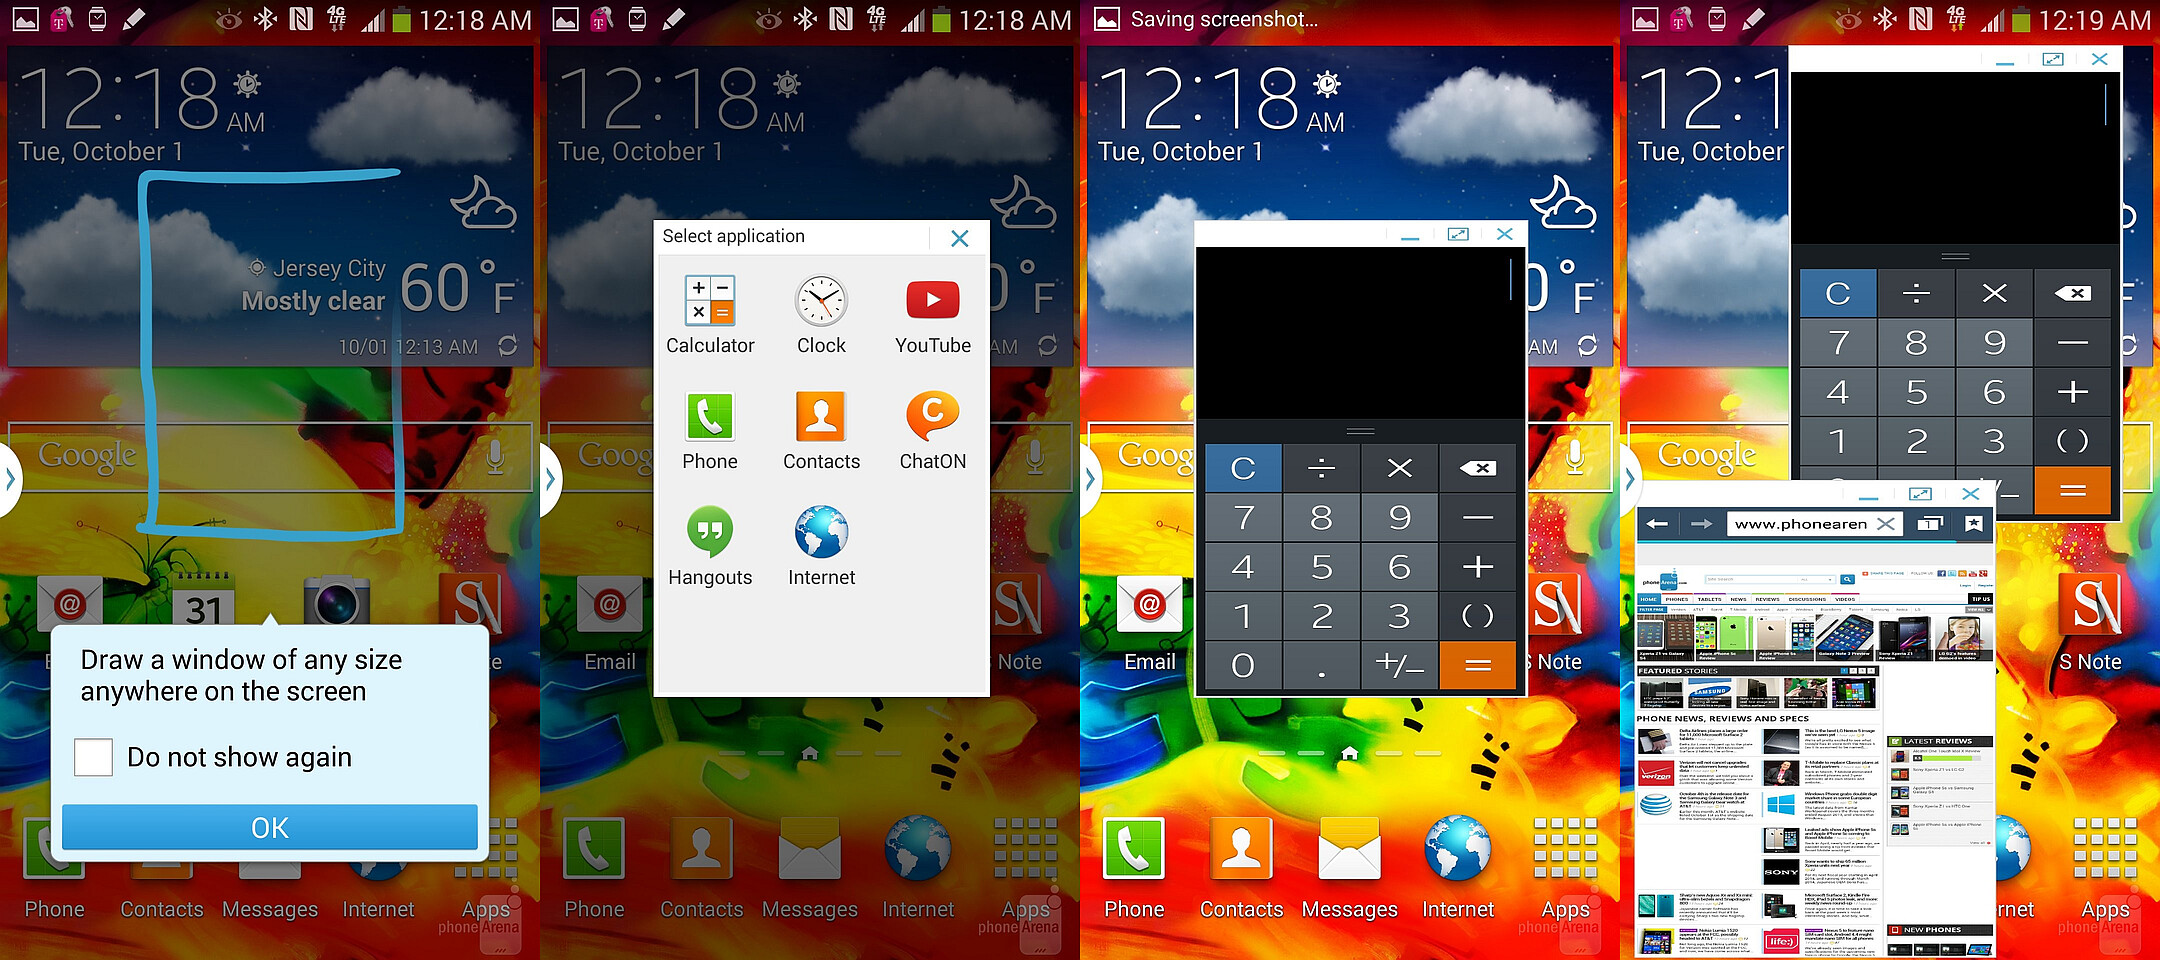 How to use scrapbook on note 3 - Pen Window On The Galaxy Note 3